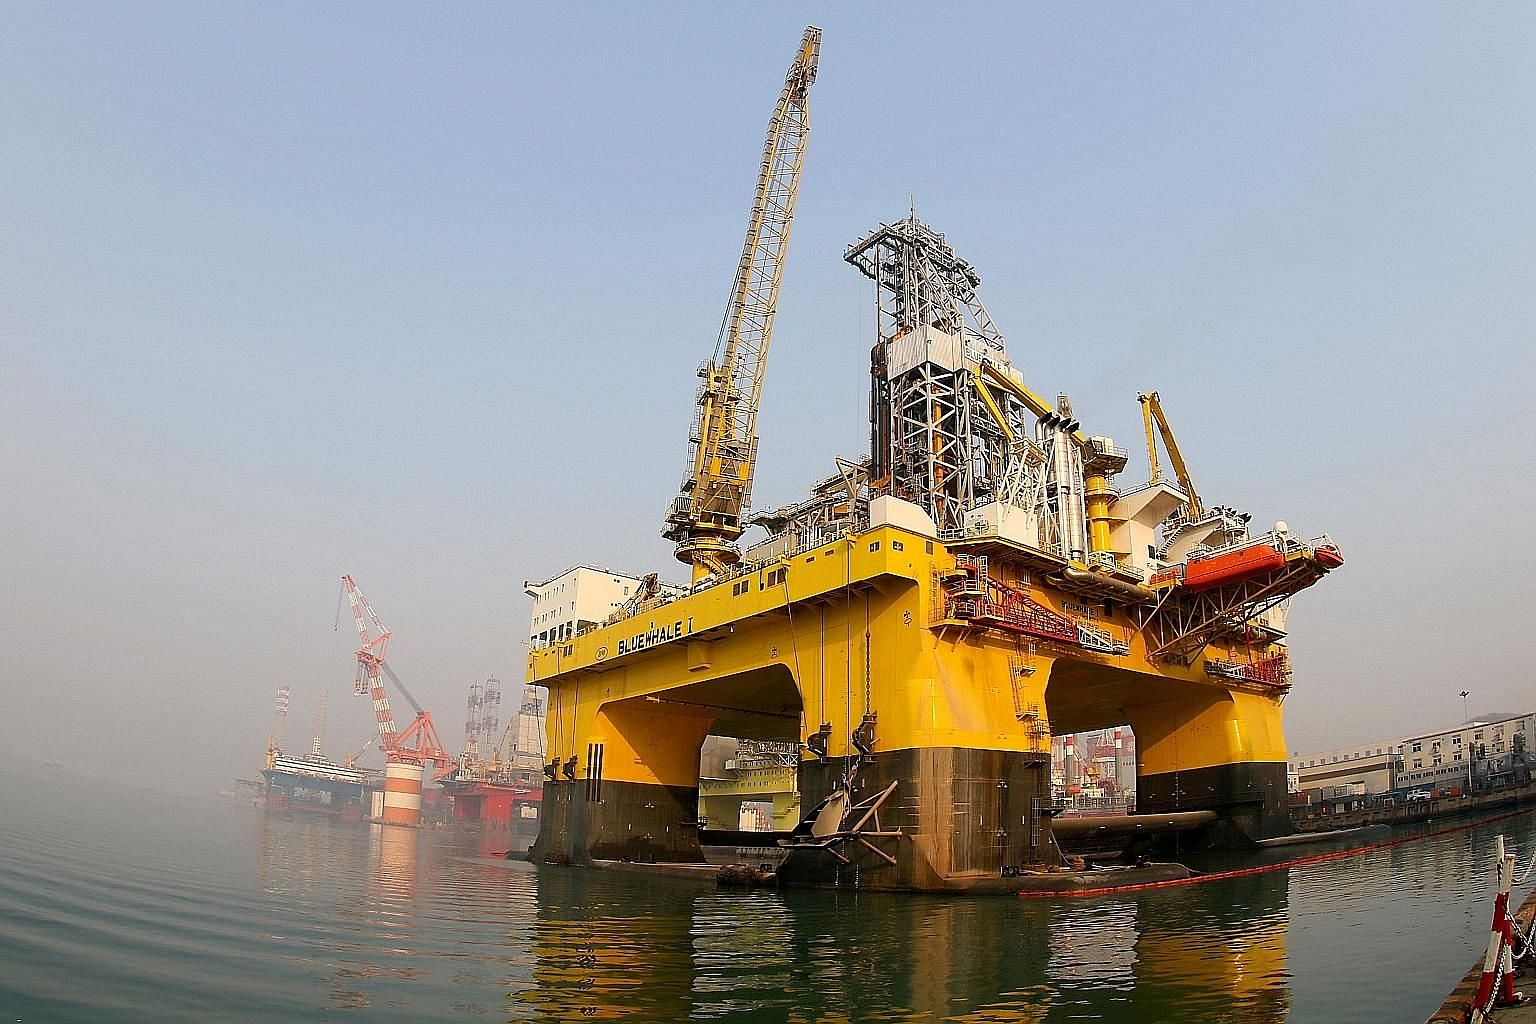 A semi-submersible drilling platform off Yantai in Shandong province. China says it expects to start commercial production of gas hydrate around 2030.